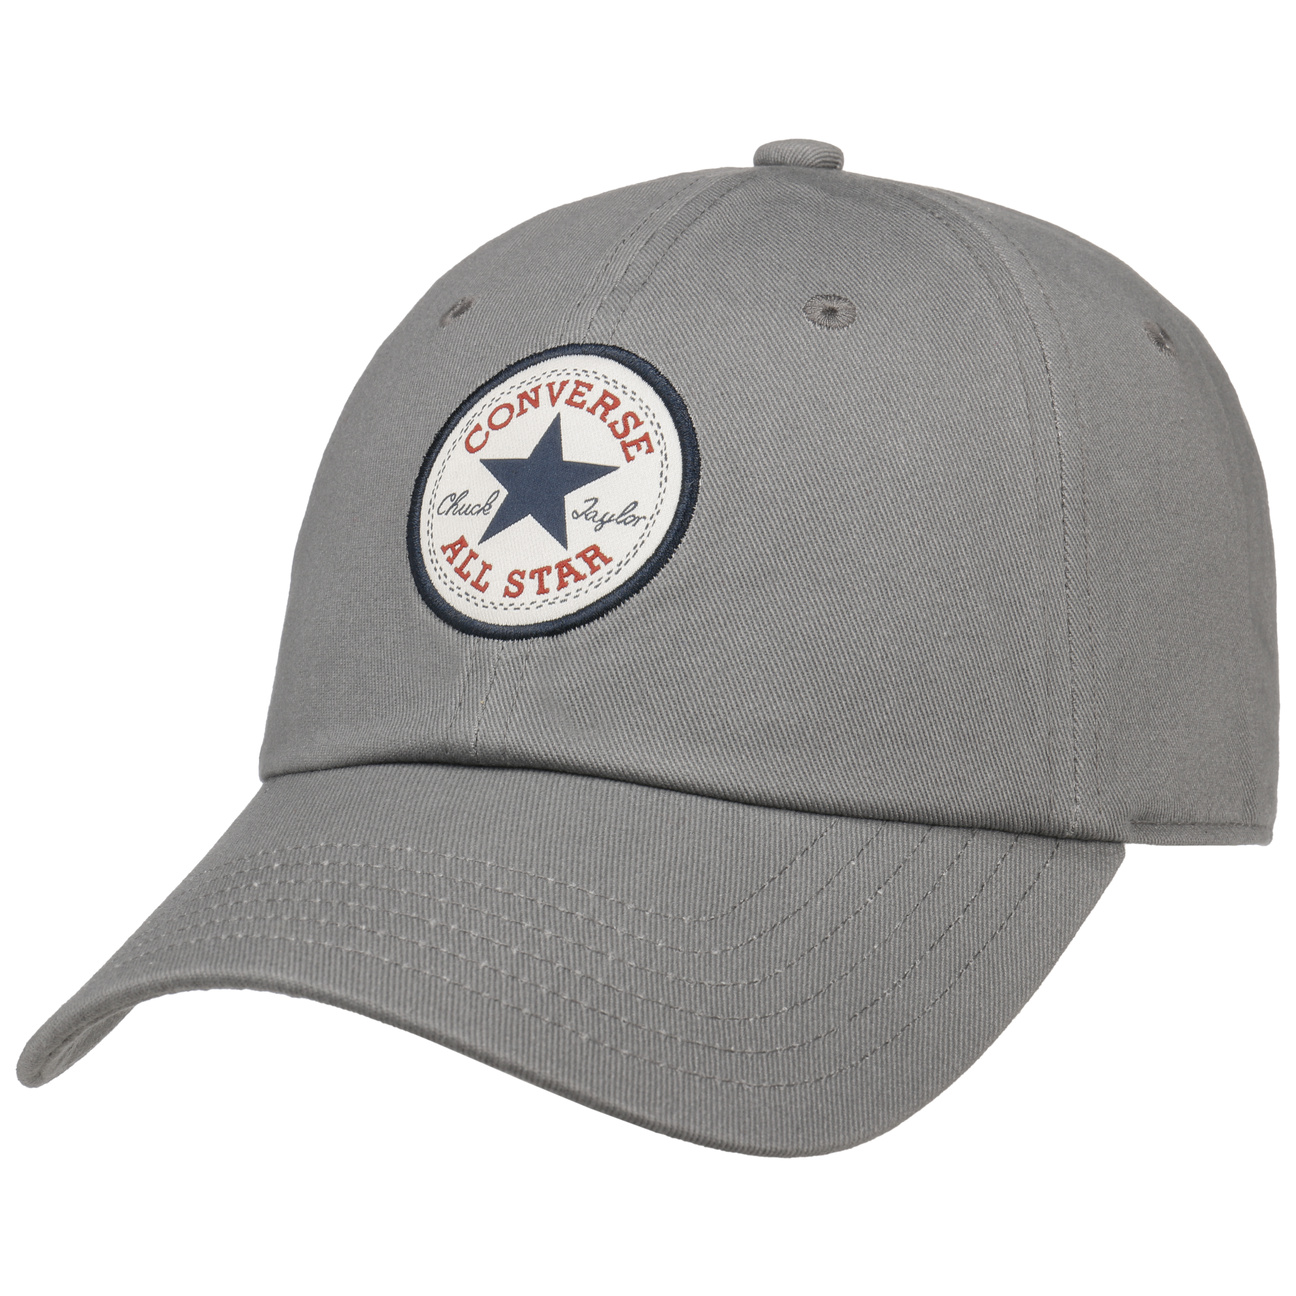 7d82439ac48 ... Core Classic Baseball Cap by Converse - olive 5 ...